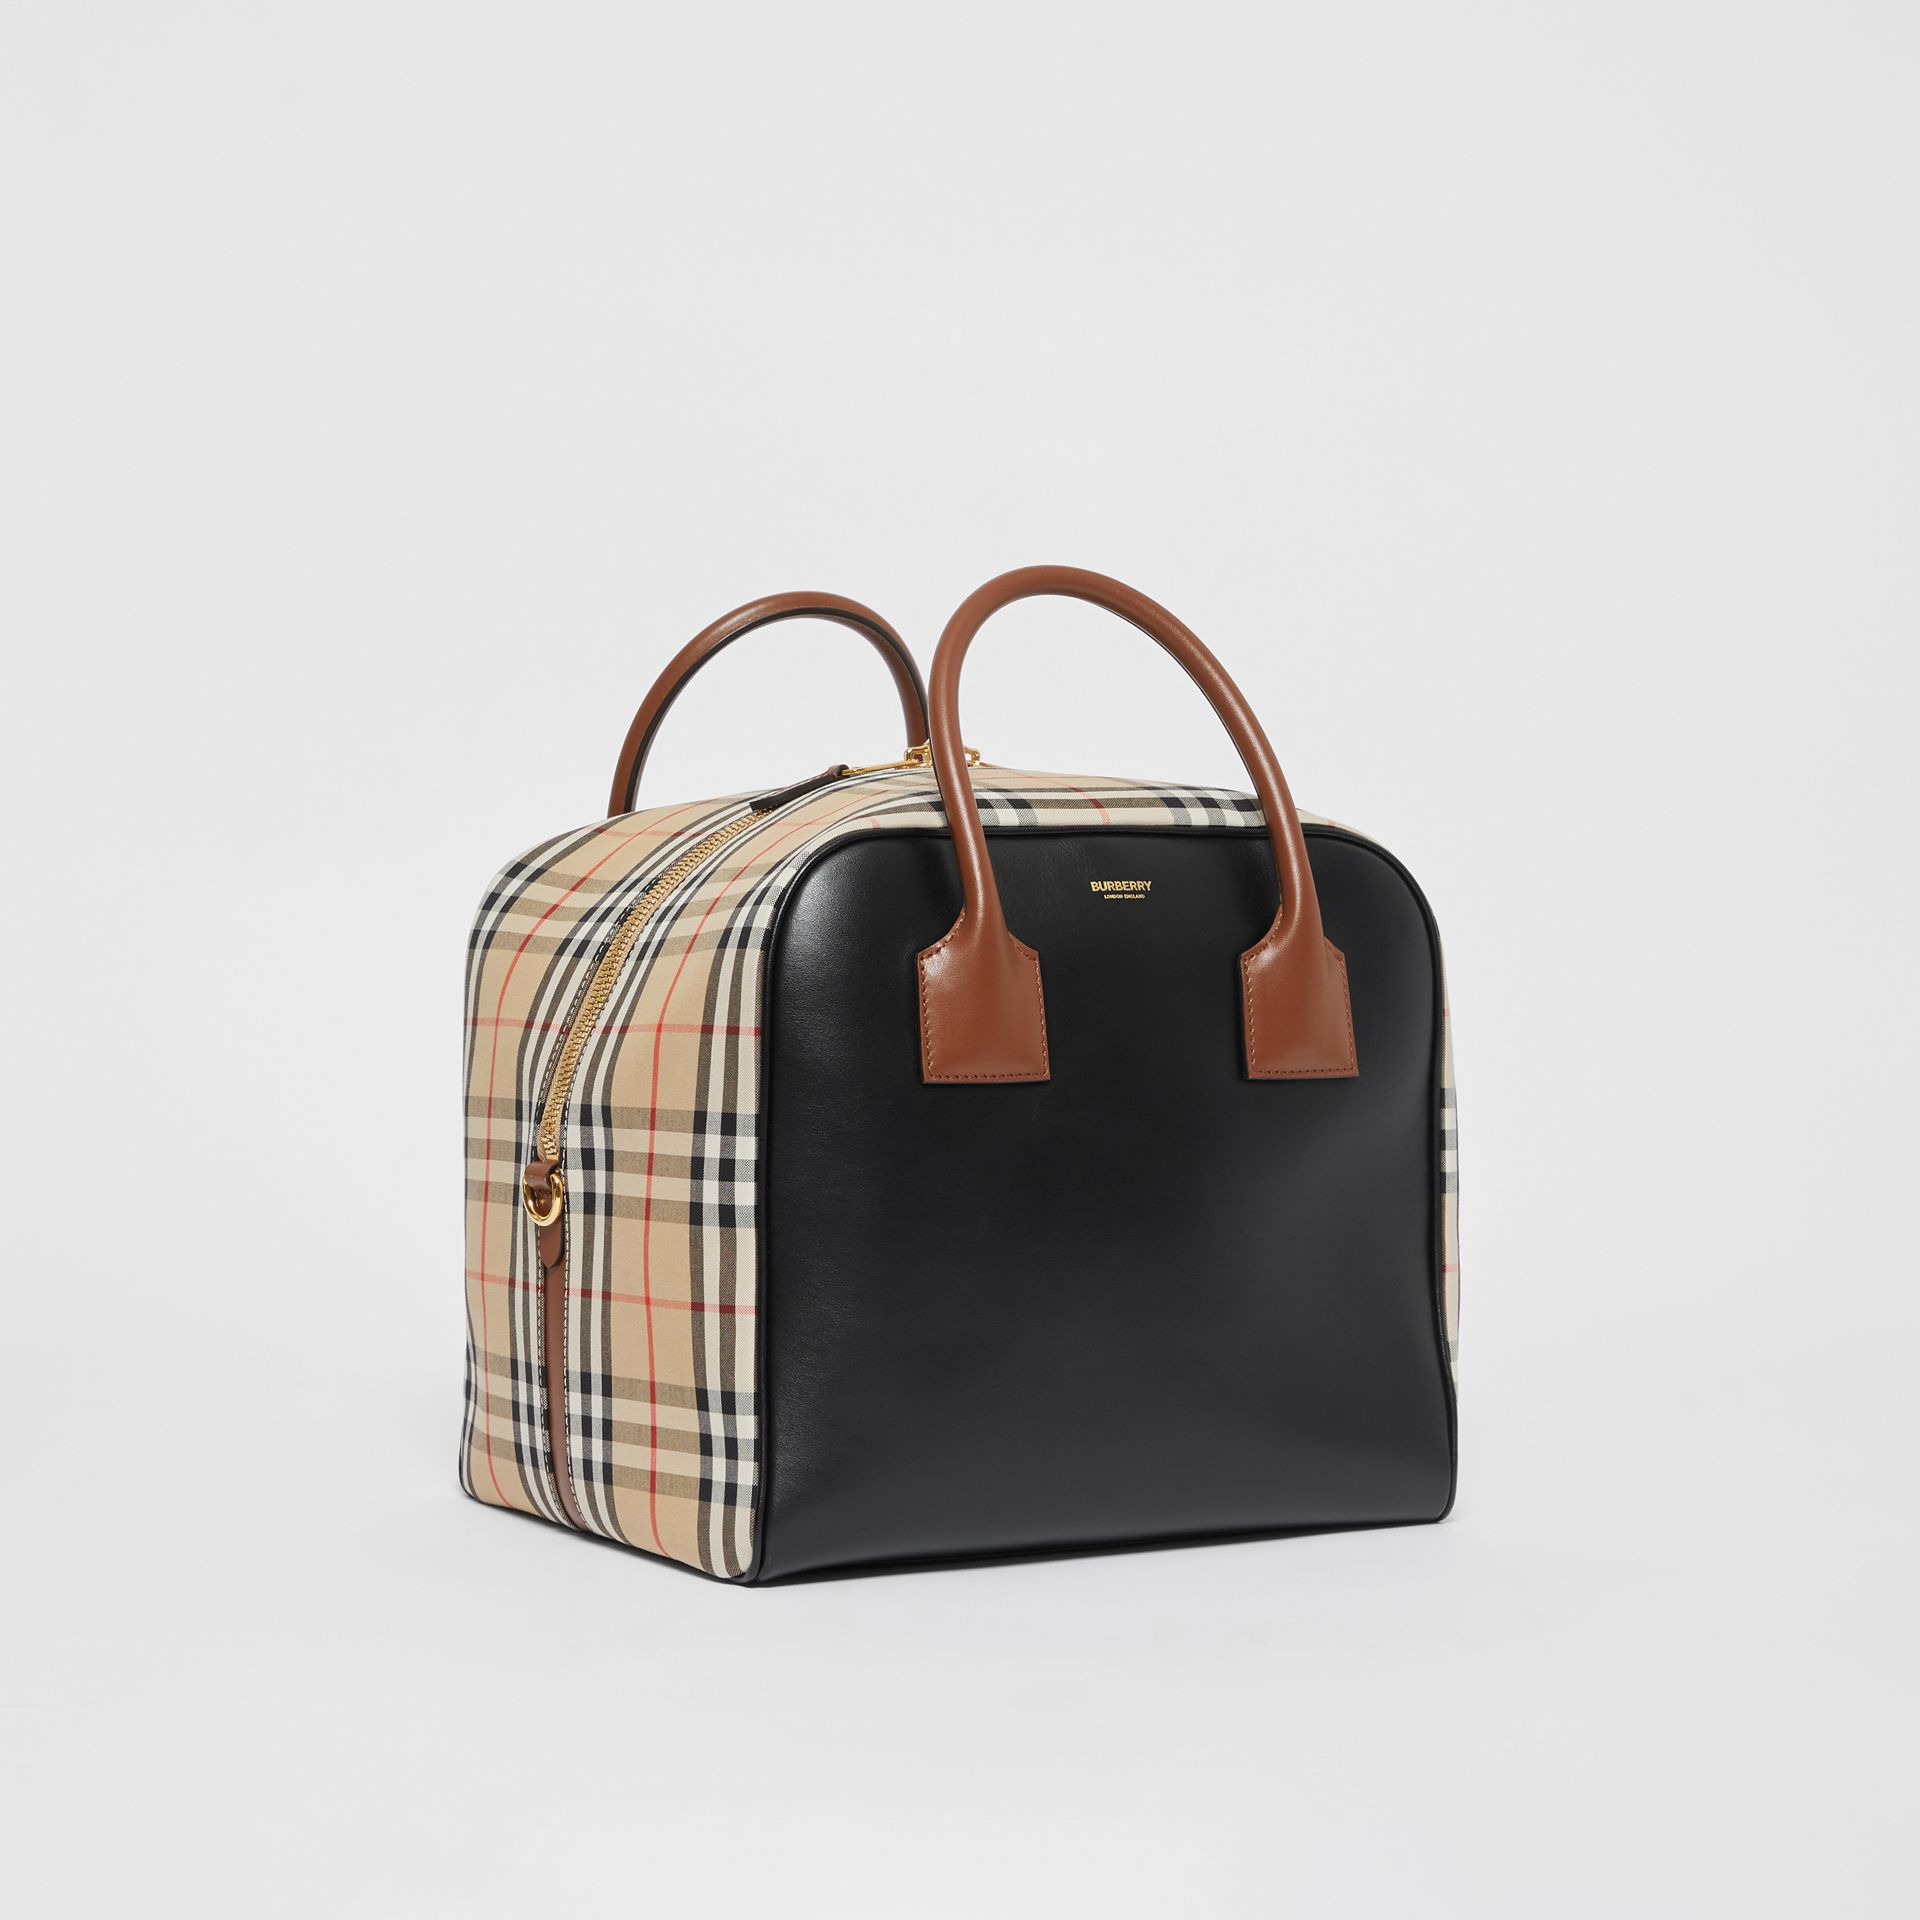 Medium Leather and Vintage Check Cube Bag in Archive Beige - Women | Burberry - gallery image 6